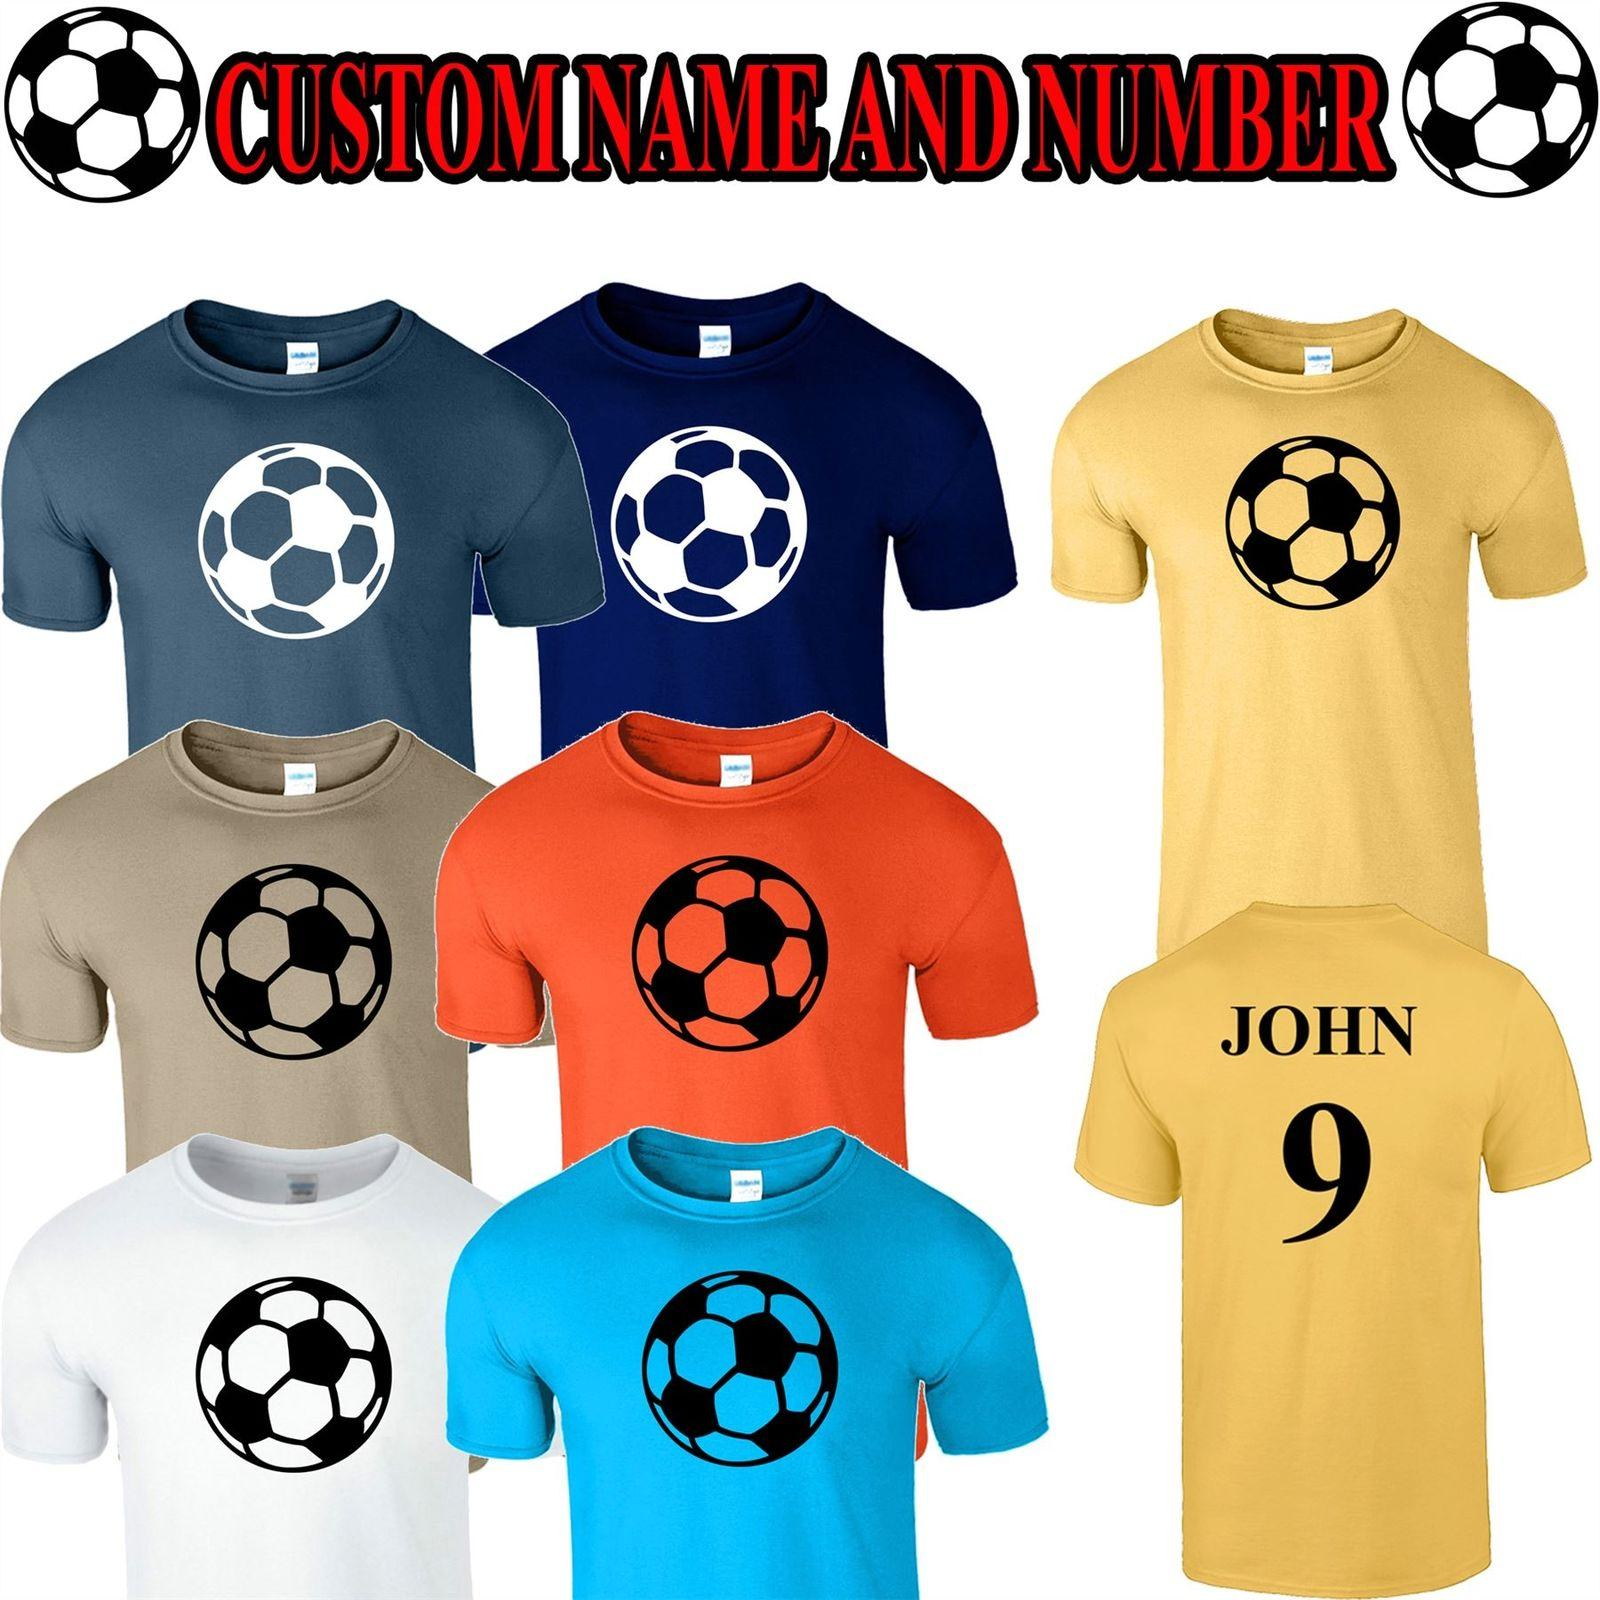 a2981533f Personalised Mens Football T Shirt Custom Name Number Girls Boys Soccer  Team Tee Cool Casual Pride T Shirt Men Crazy Shirt Designs A Shirt A Day  From ...